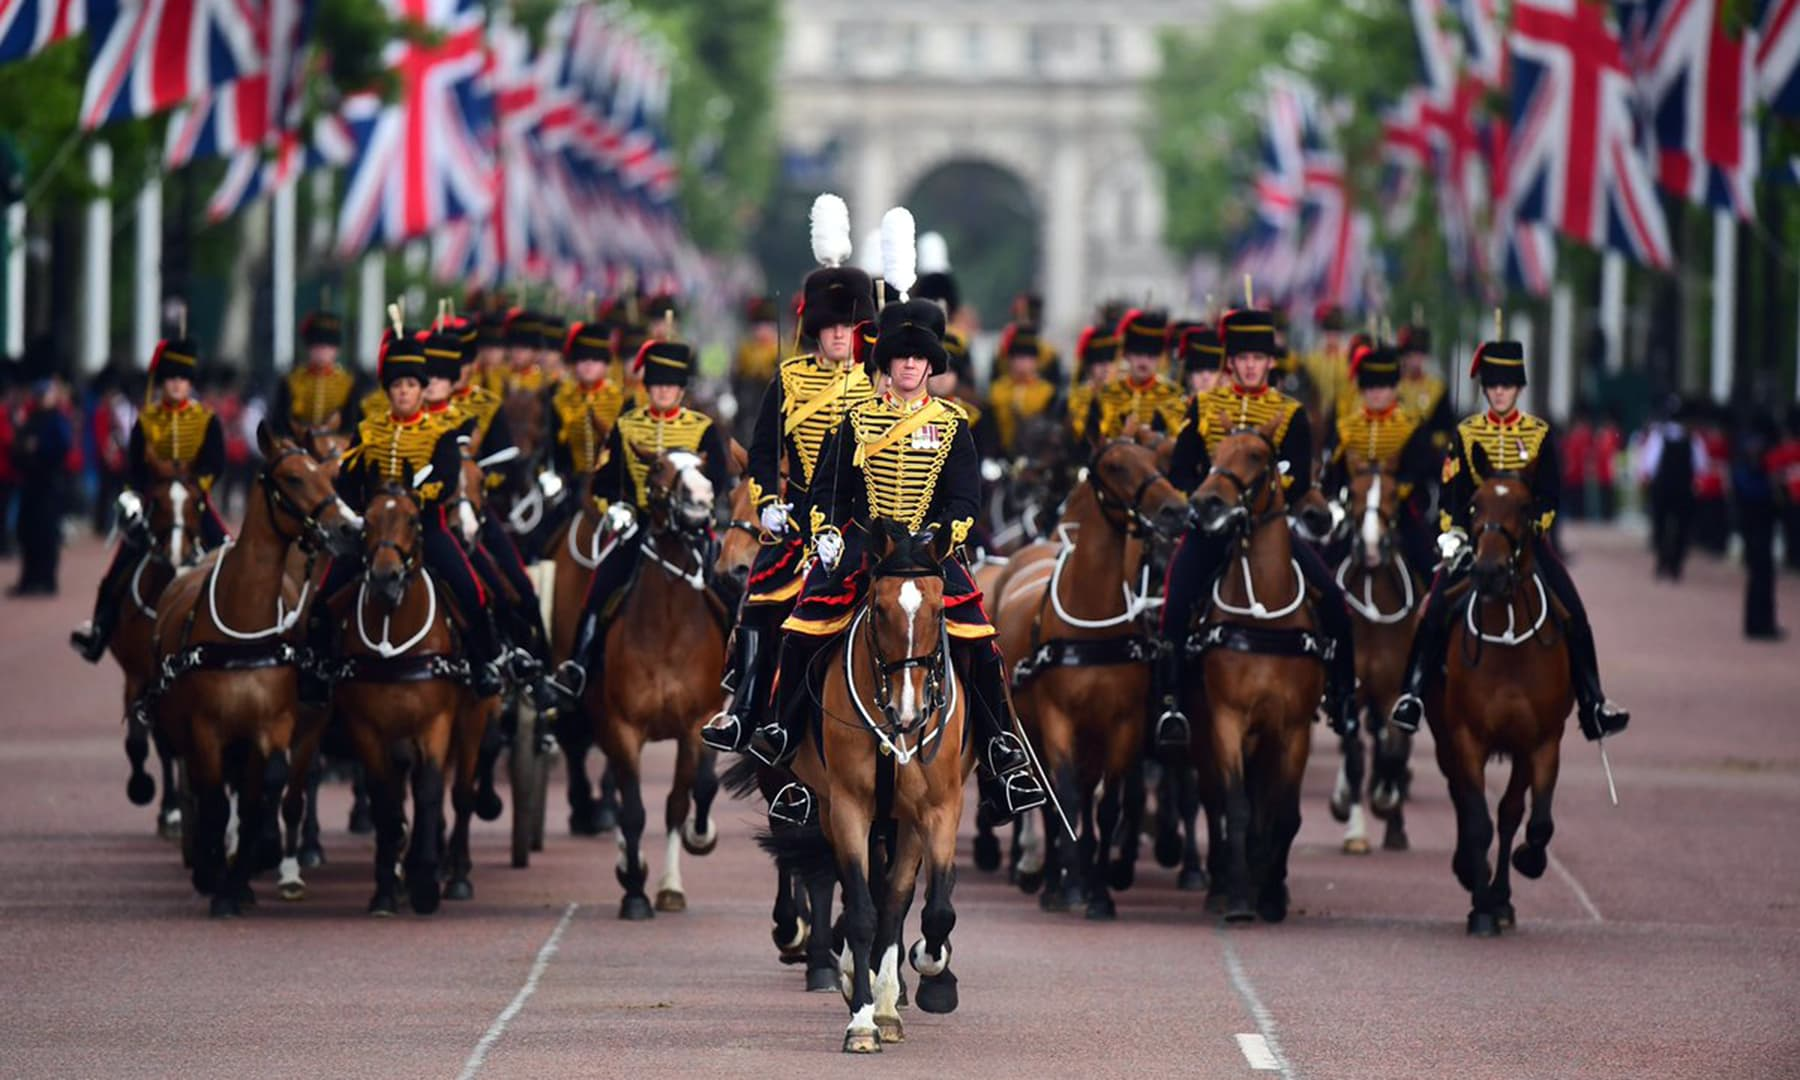 The King's Troop, Royal Horse Artillery, a ceremonial unit of the British Army is pictured taking part in the parade. — Photo courtesy @RoyalFamily